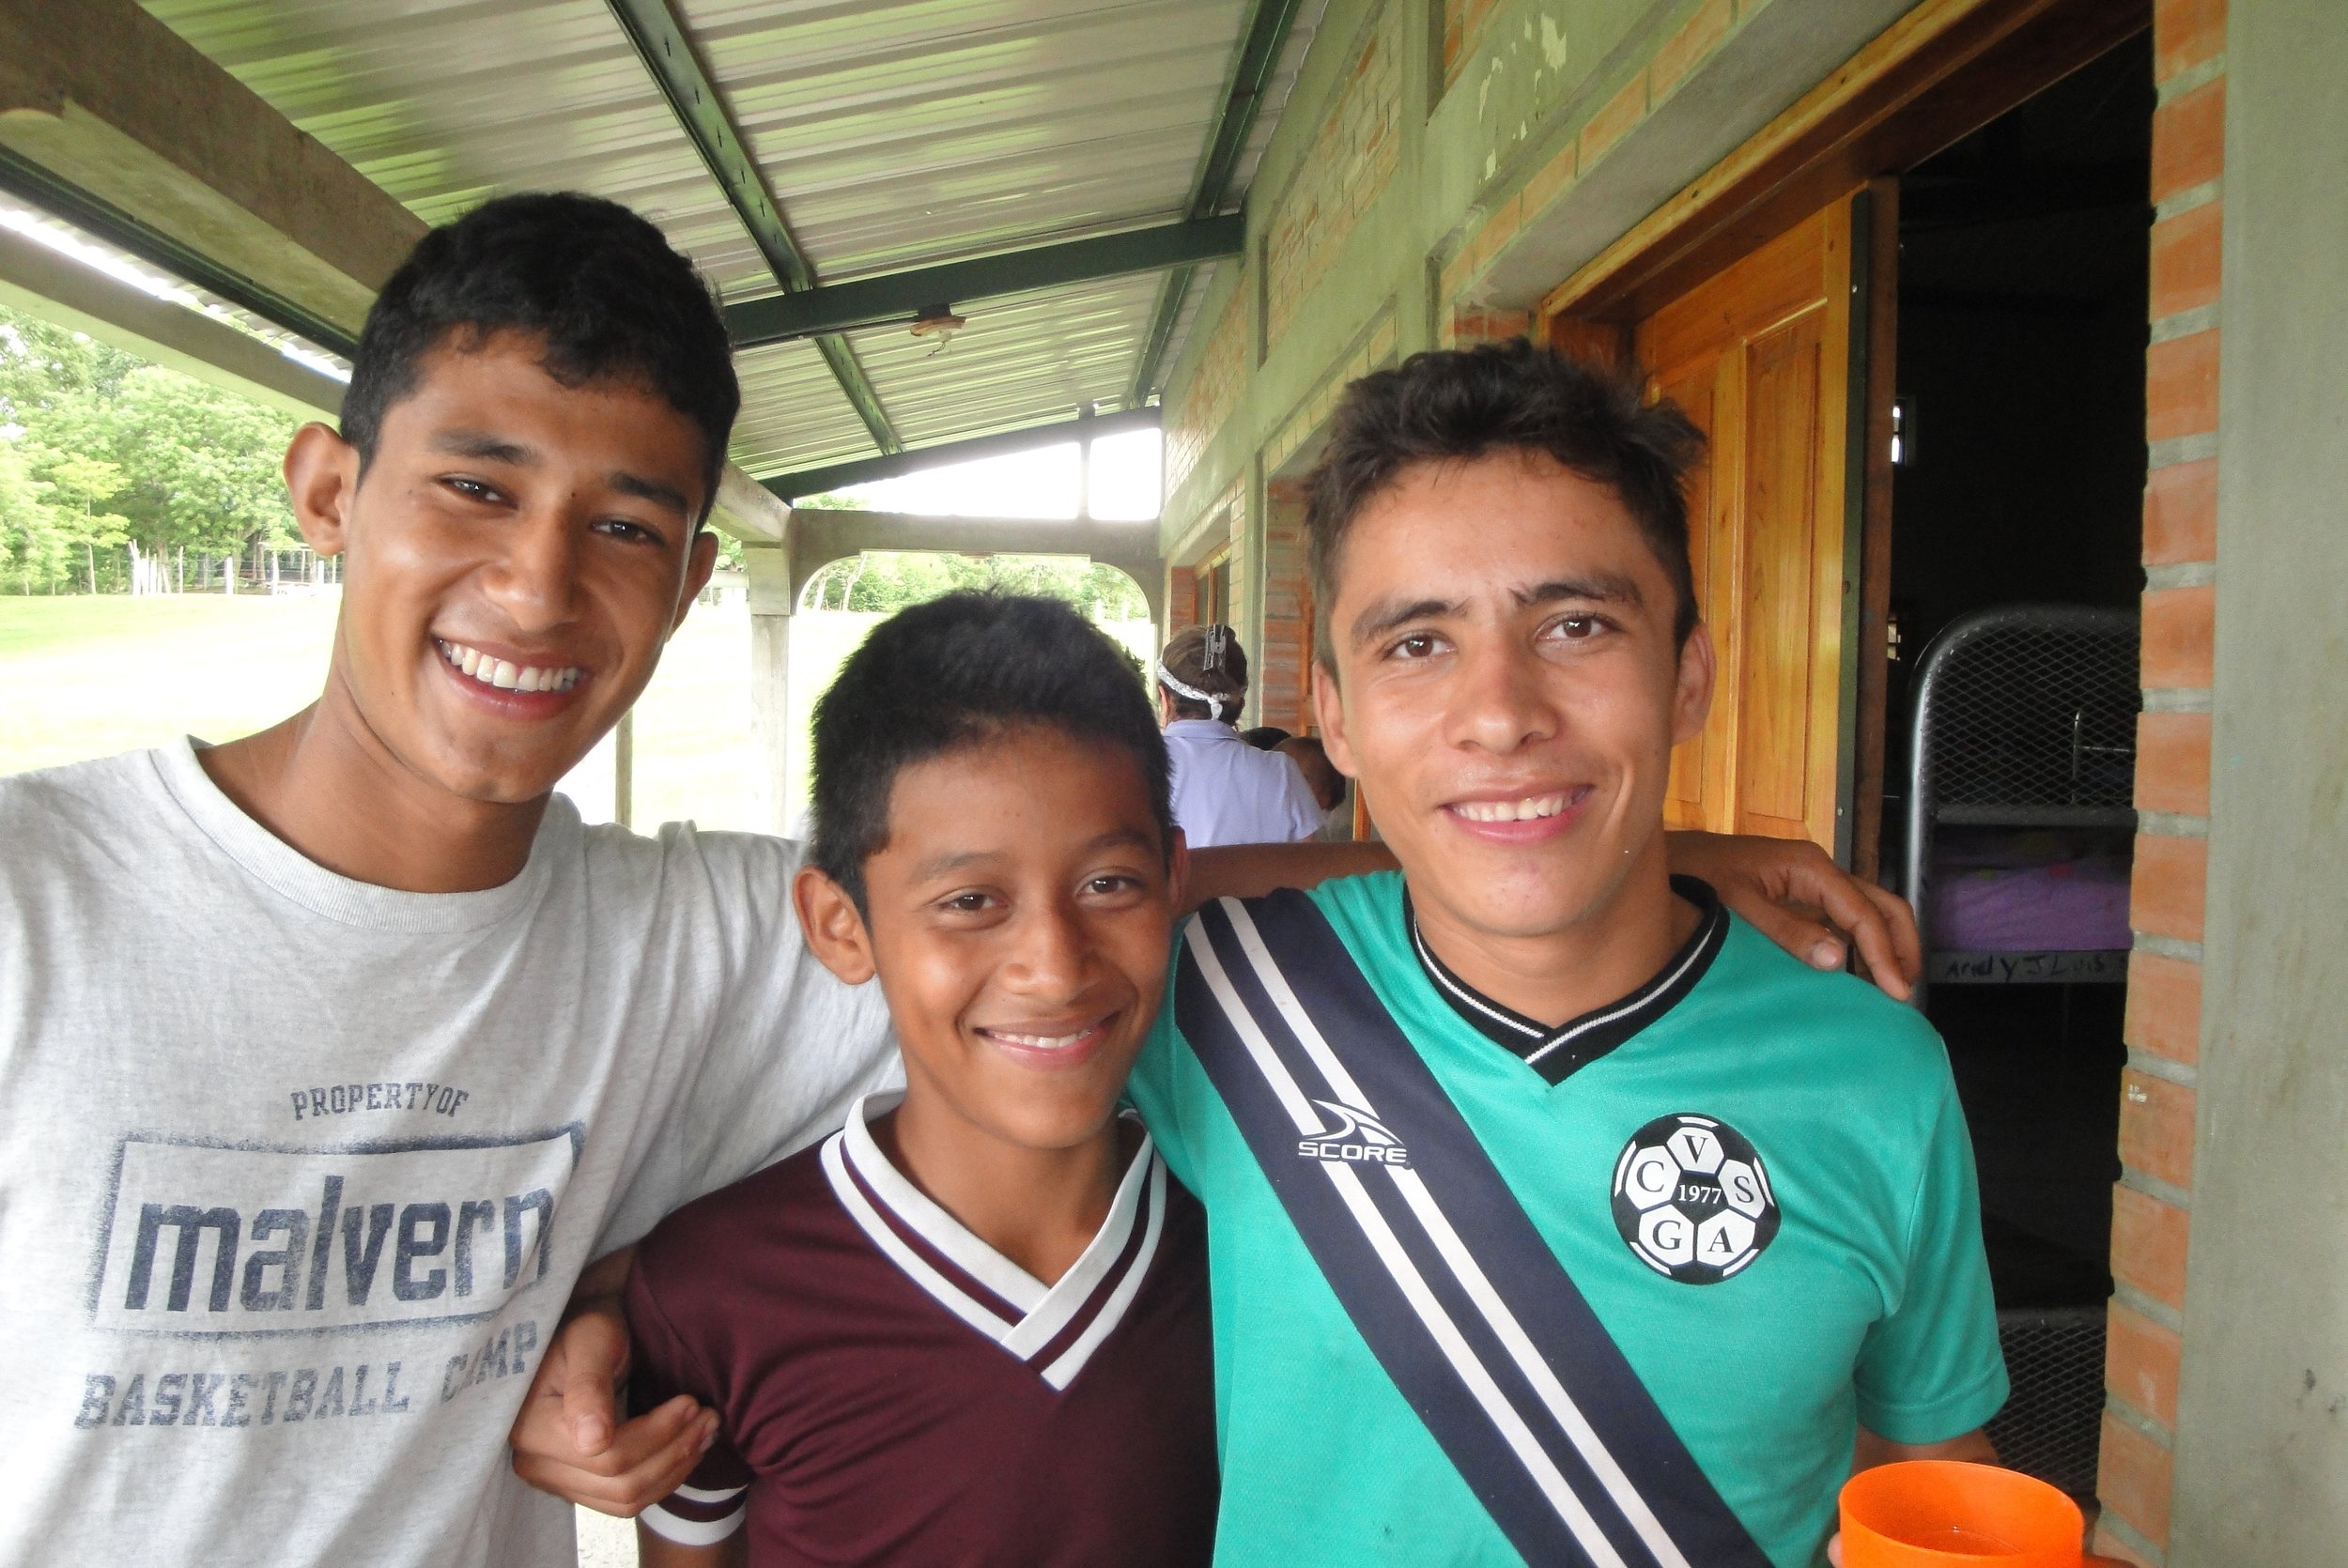 Santino (in the middle) with two friends.